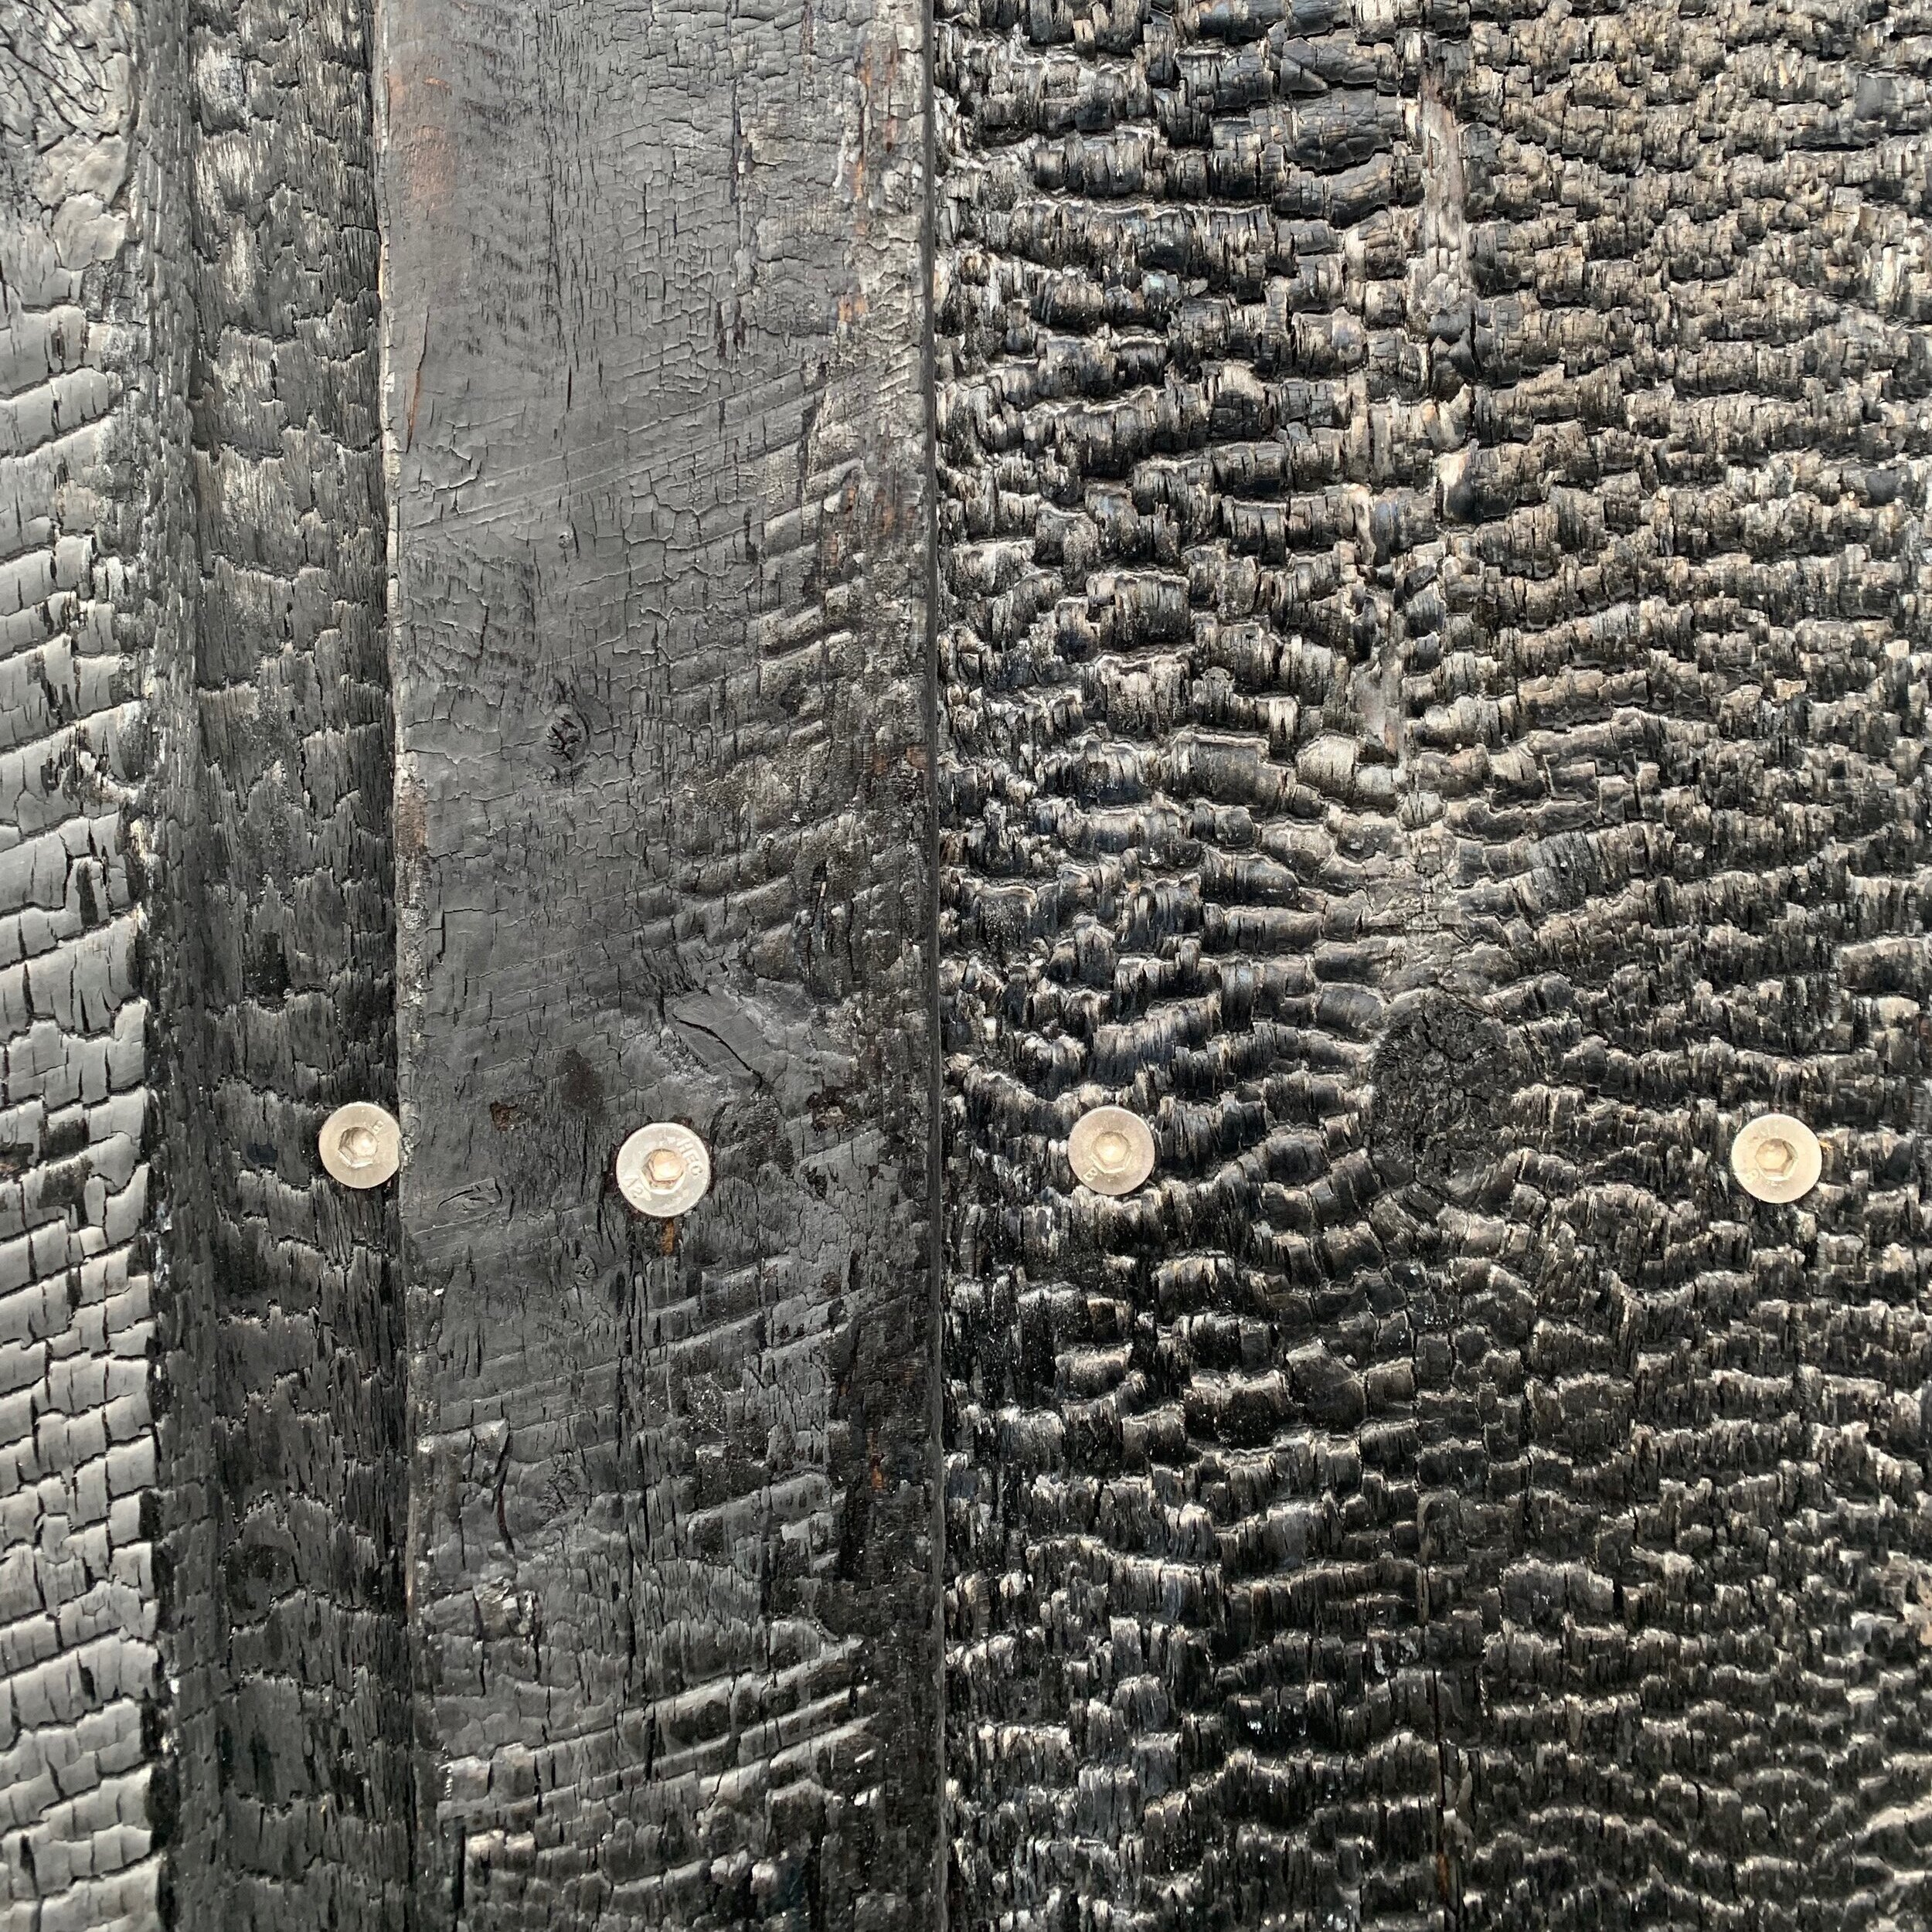 WANT LONGER LASTING, MORE SUSTAINABLE, NATURAL, CHARRED TIMBER CLADDING FOR YOUR PROJECT? -